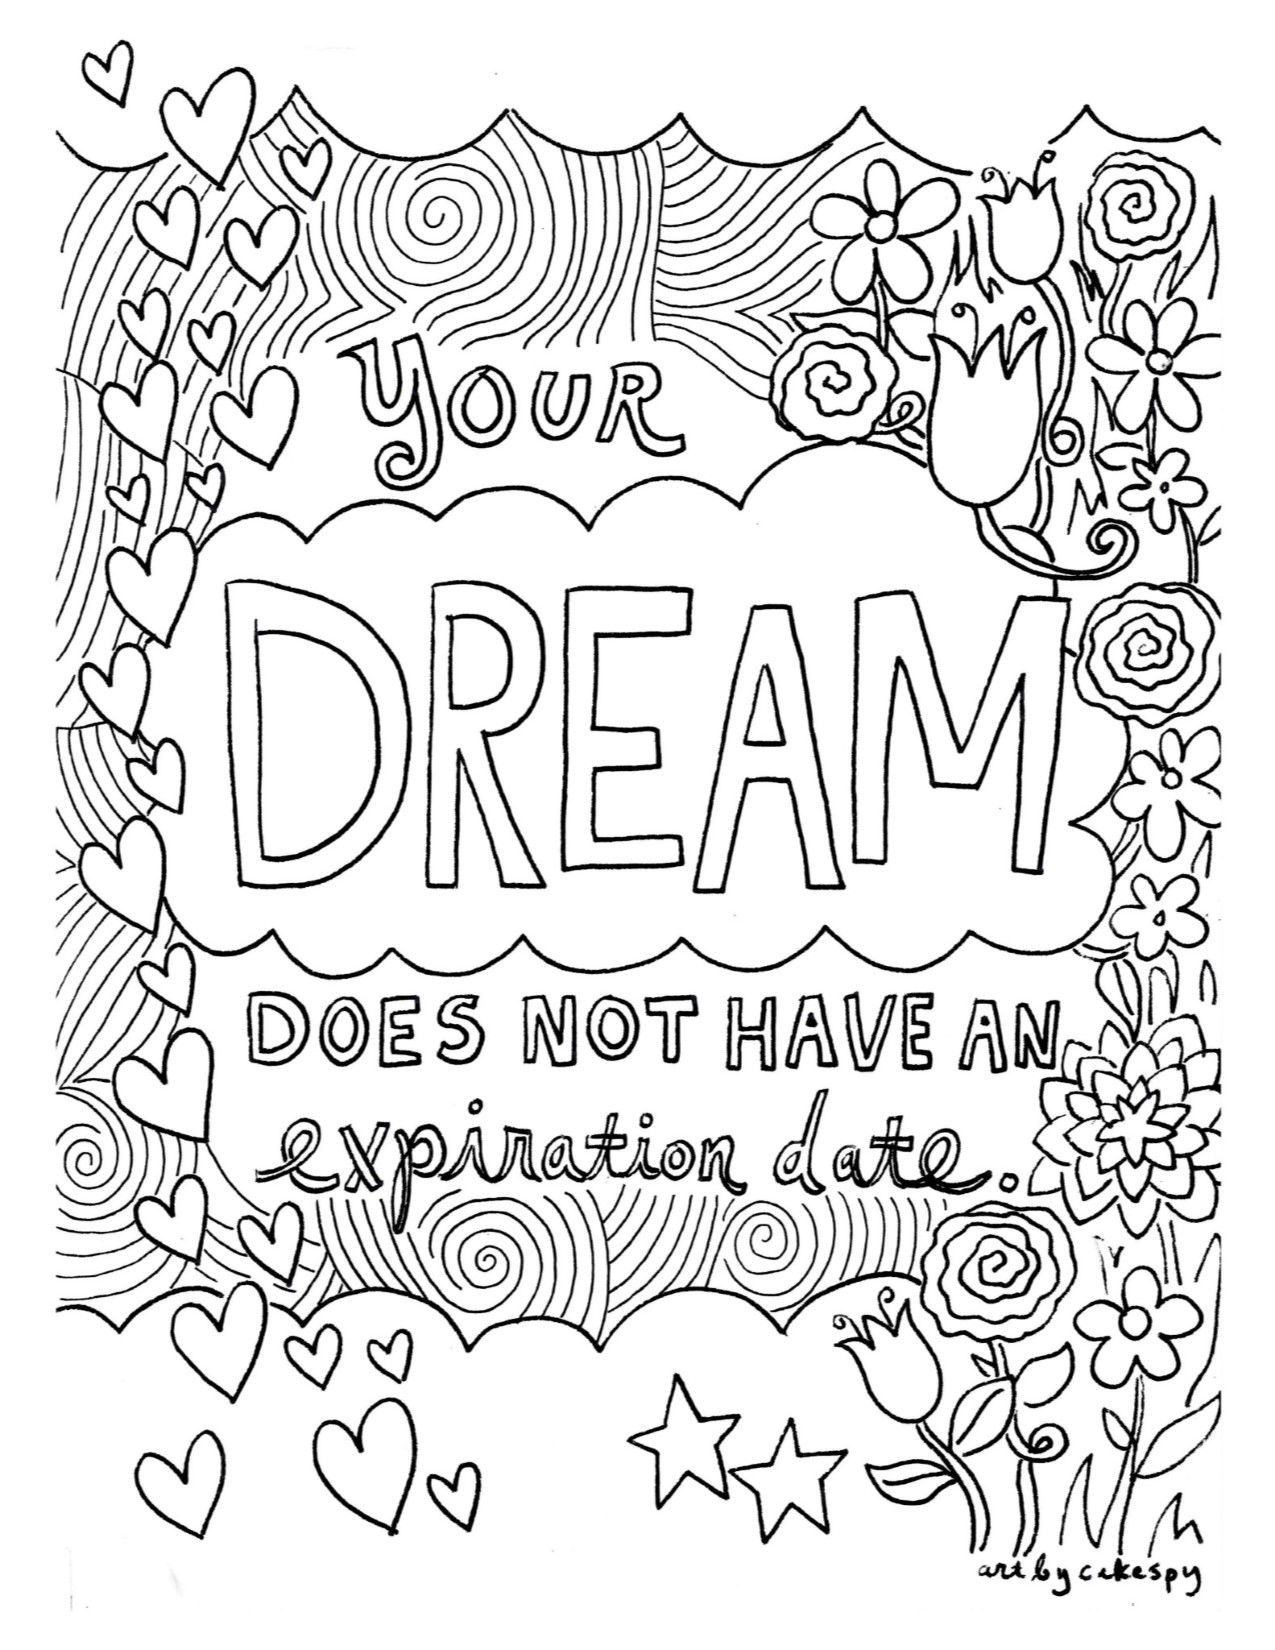 after my no a dear friend sent me this coloring page from craftsycom and i love it so much it is a reminder that as long as that dream still burns